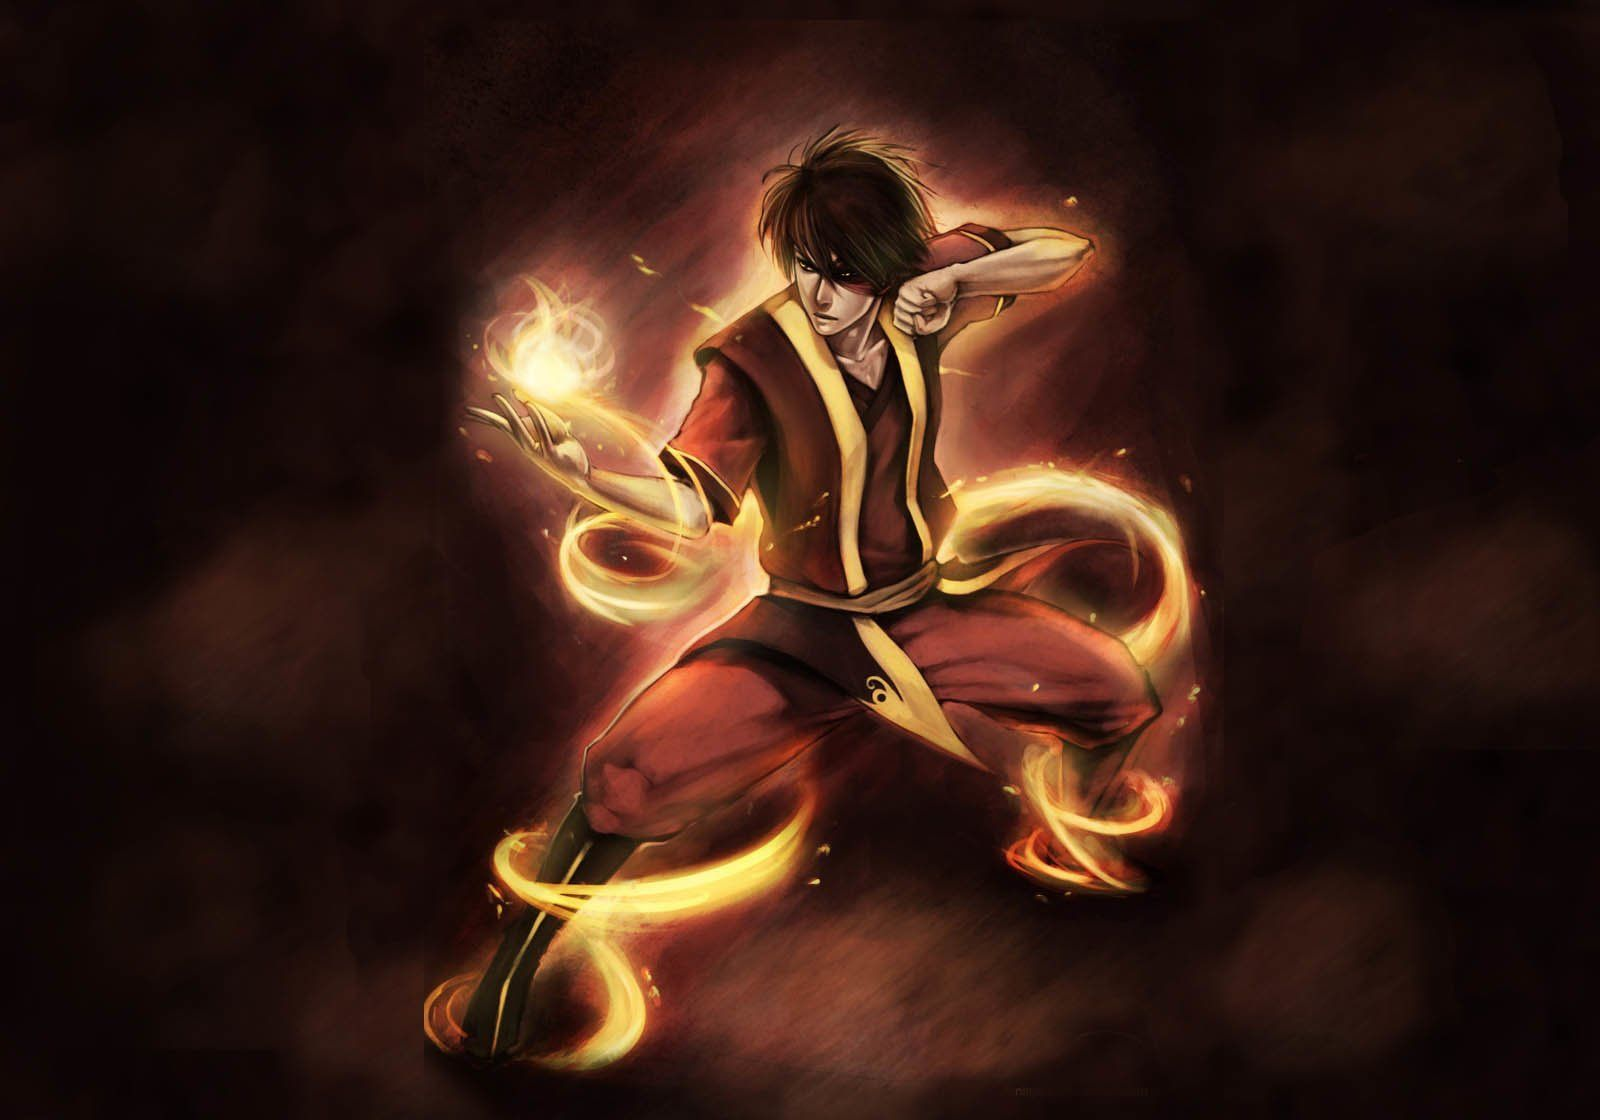 Avatar The Last Airbender HD Wallpapers Backgrounds